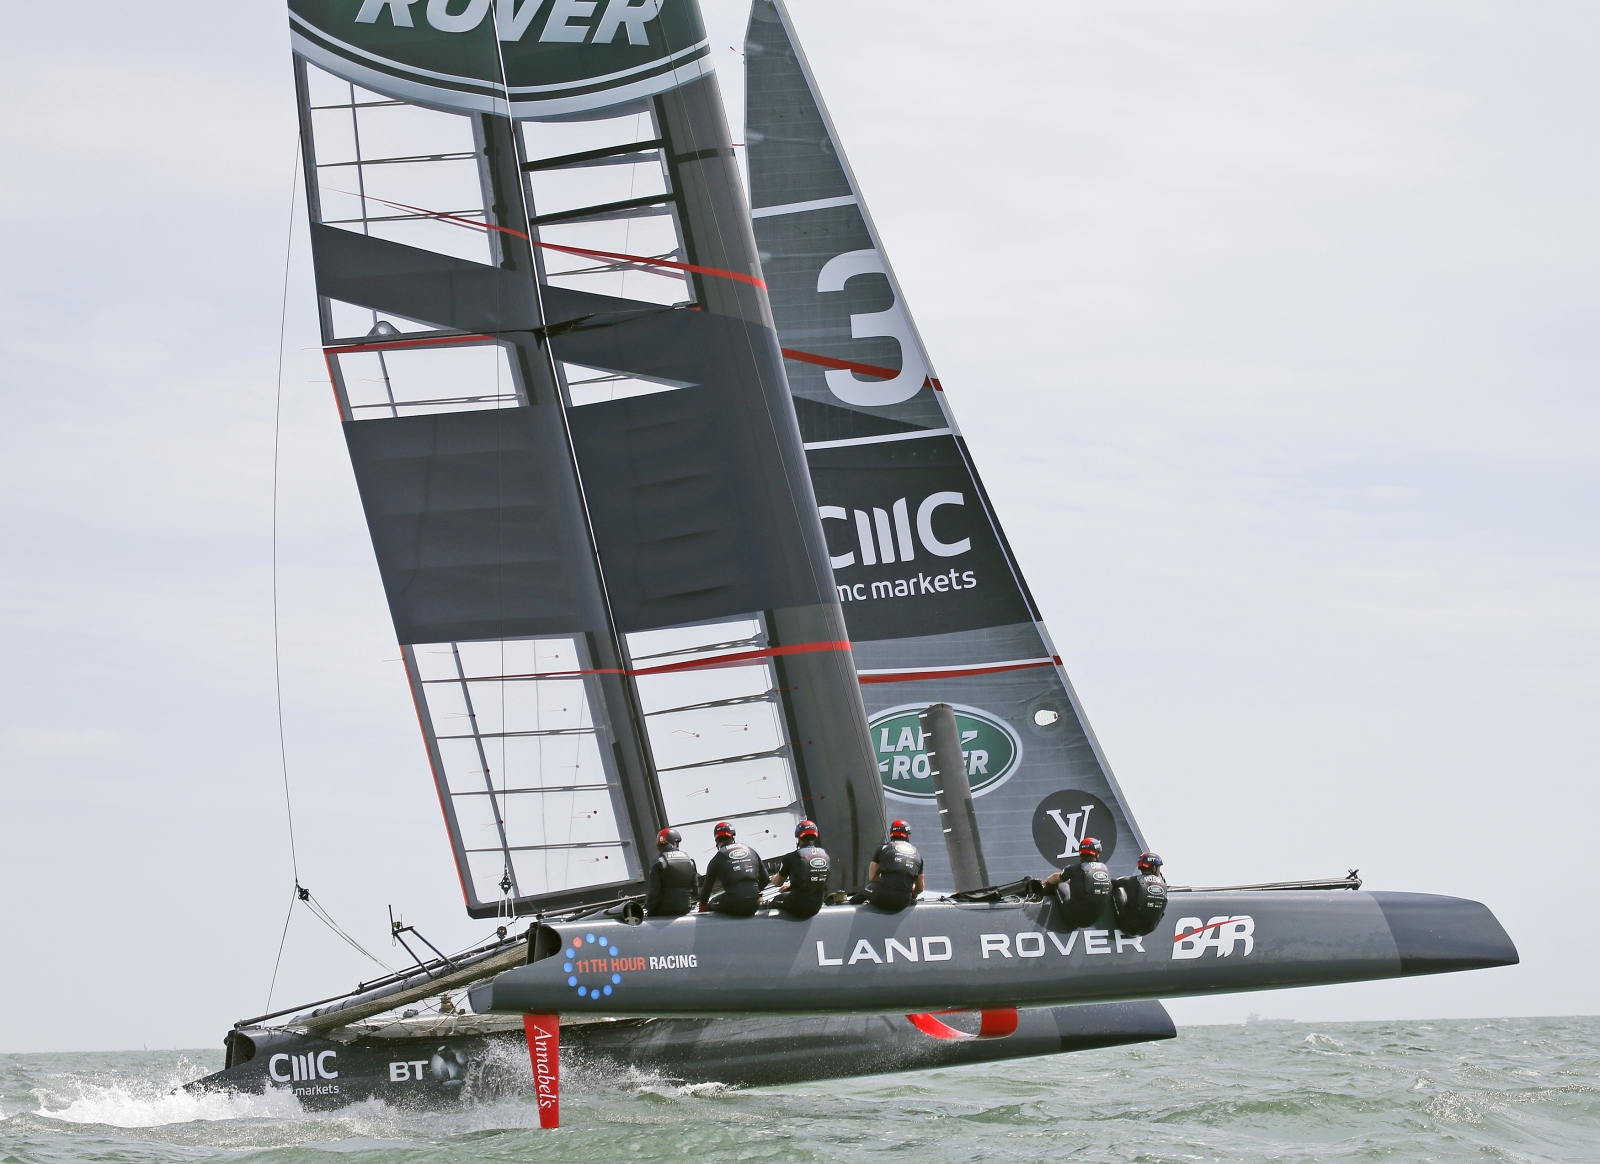 BAE Systems developed bone conduction communication systems being used by Land Rover BAR sailing team